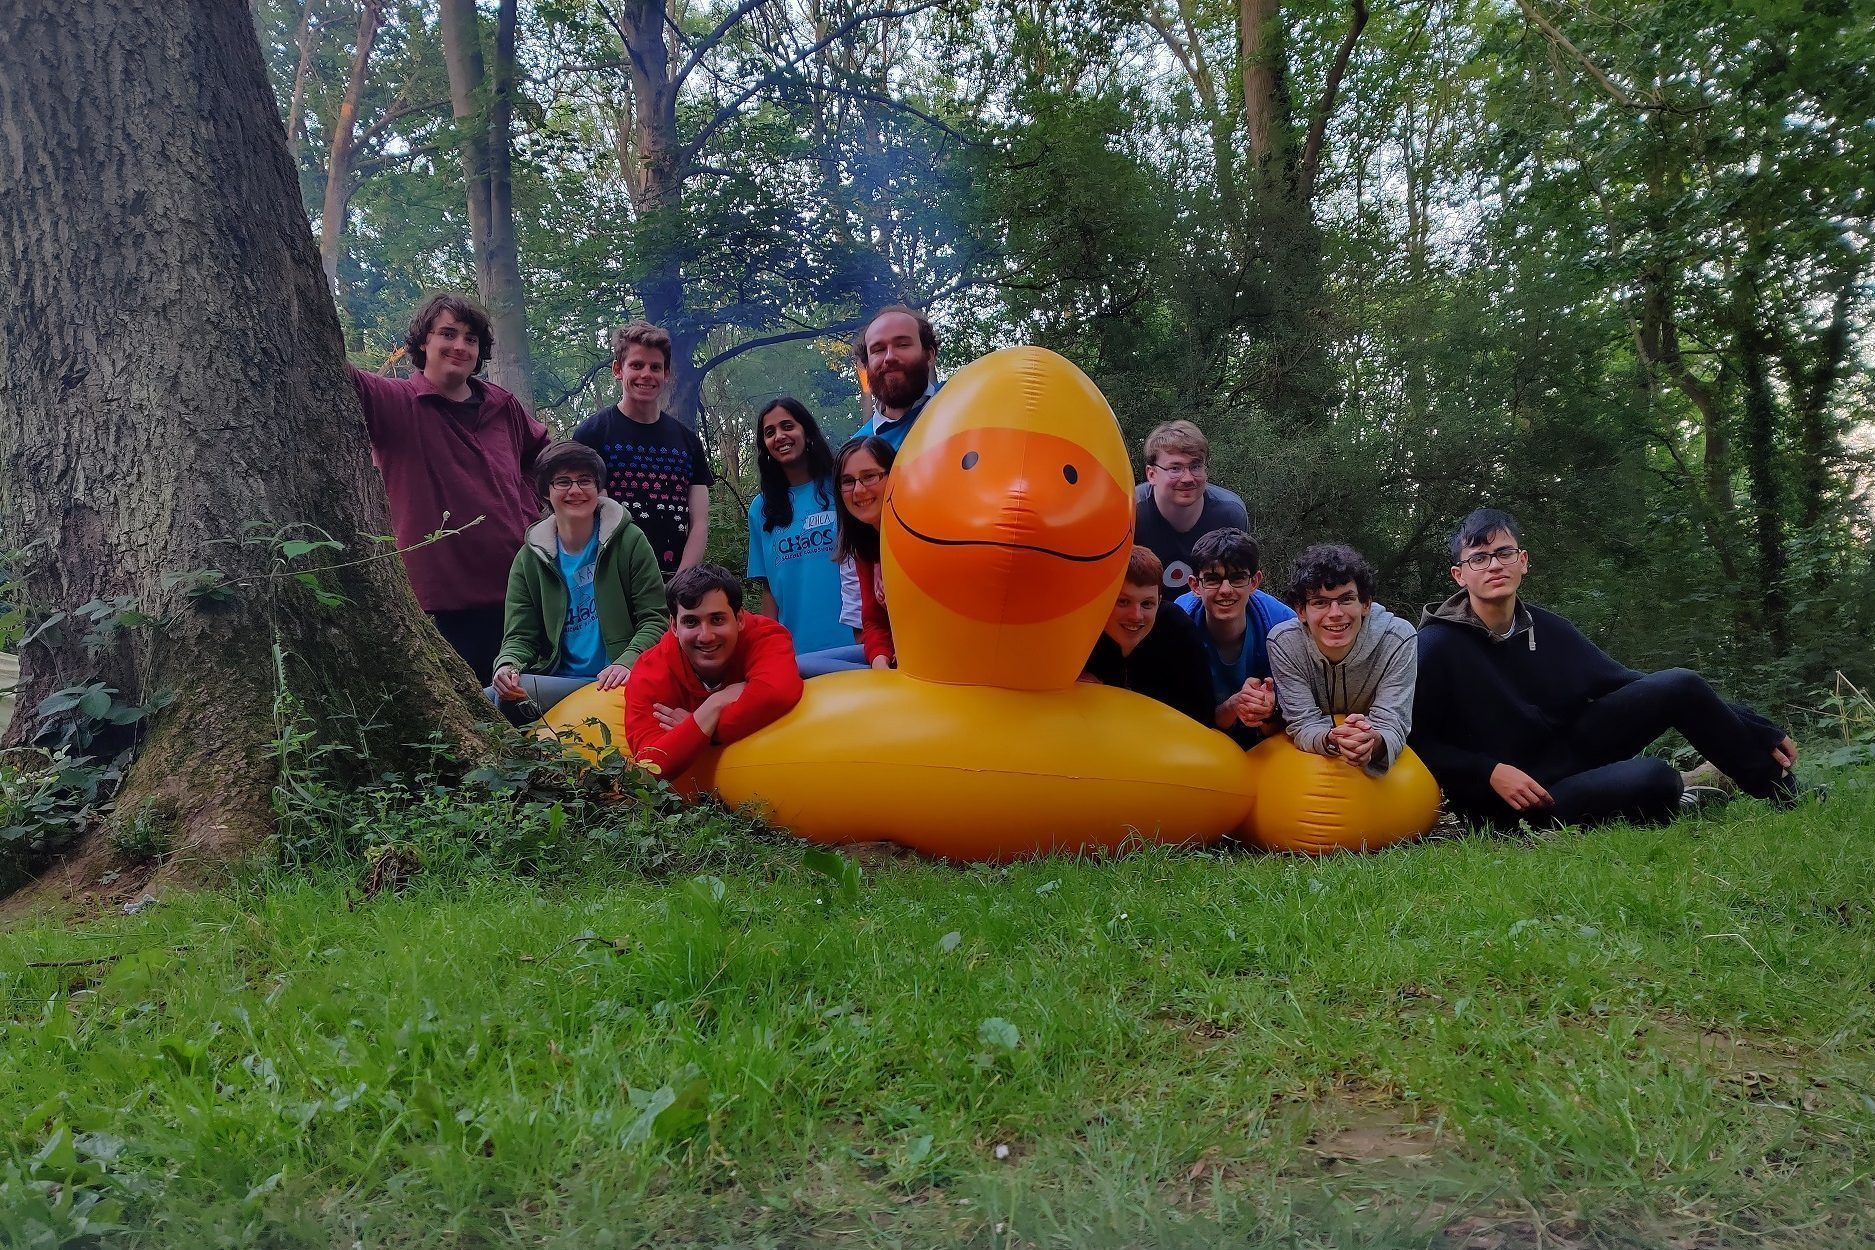 Posing with a Giant Duck!